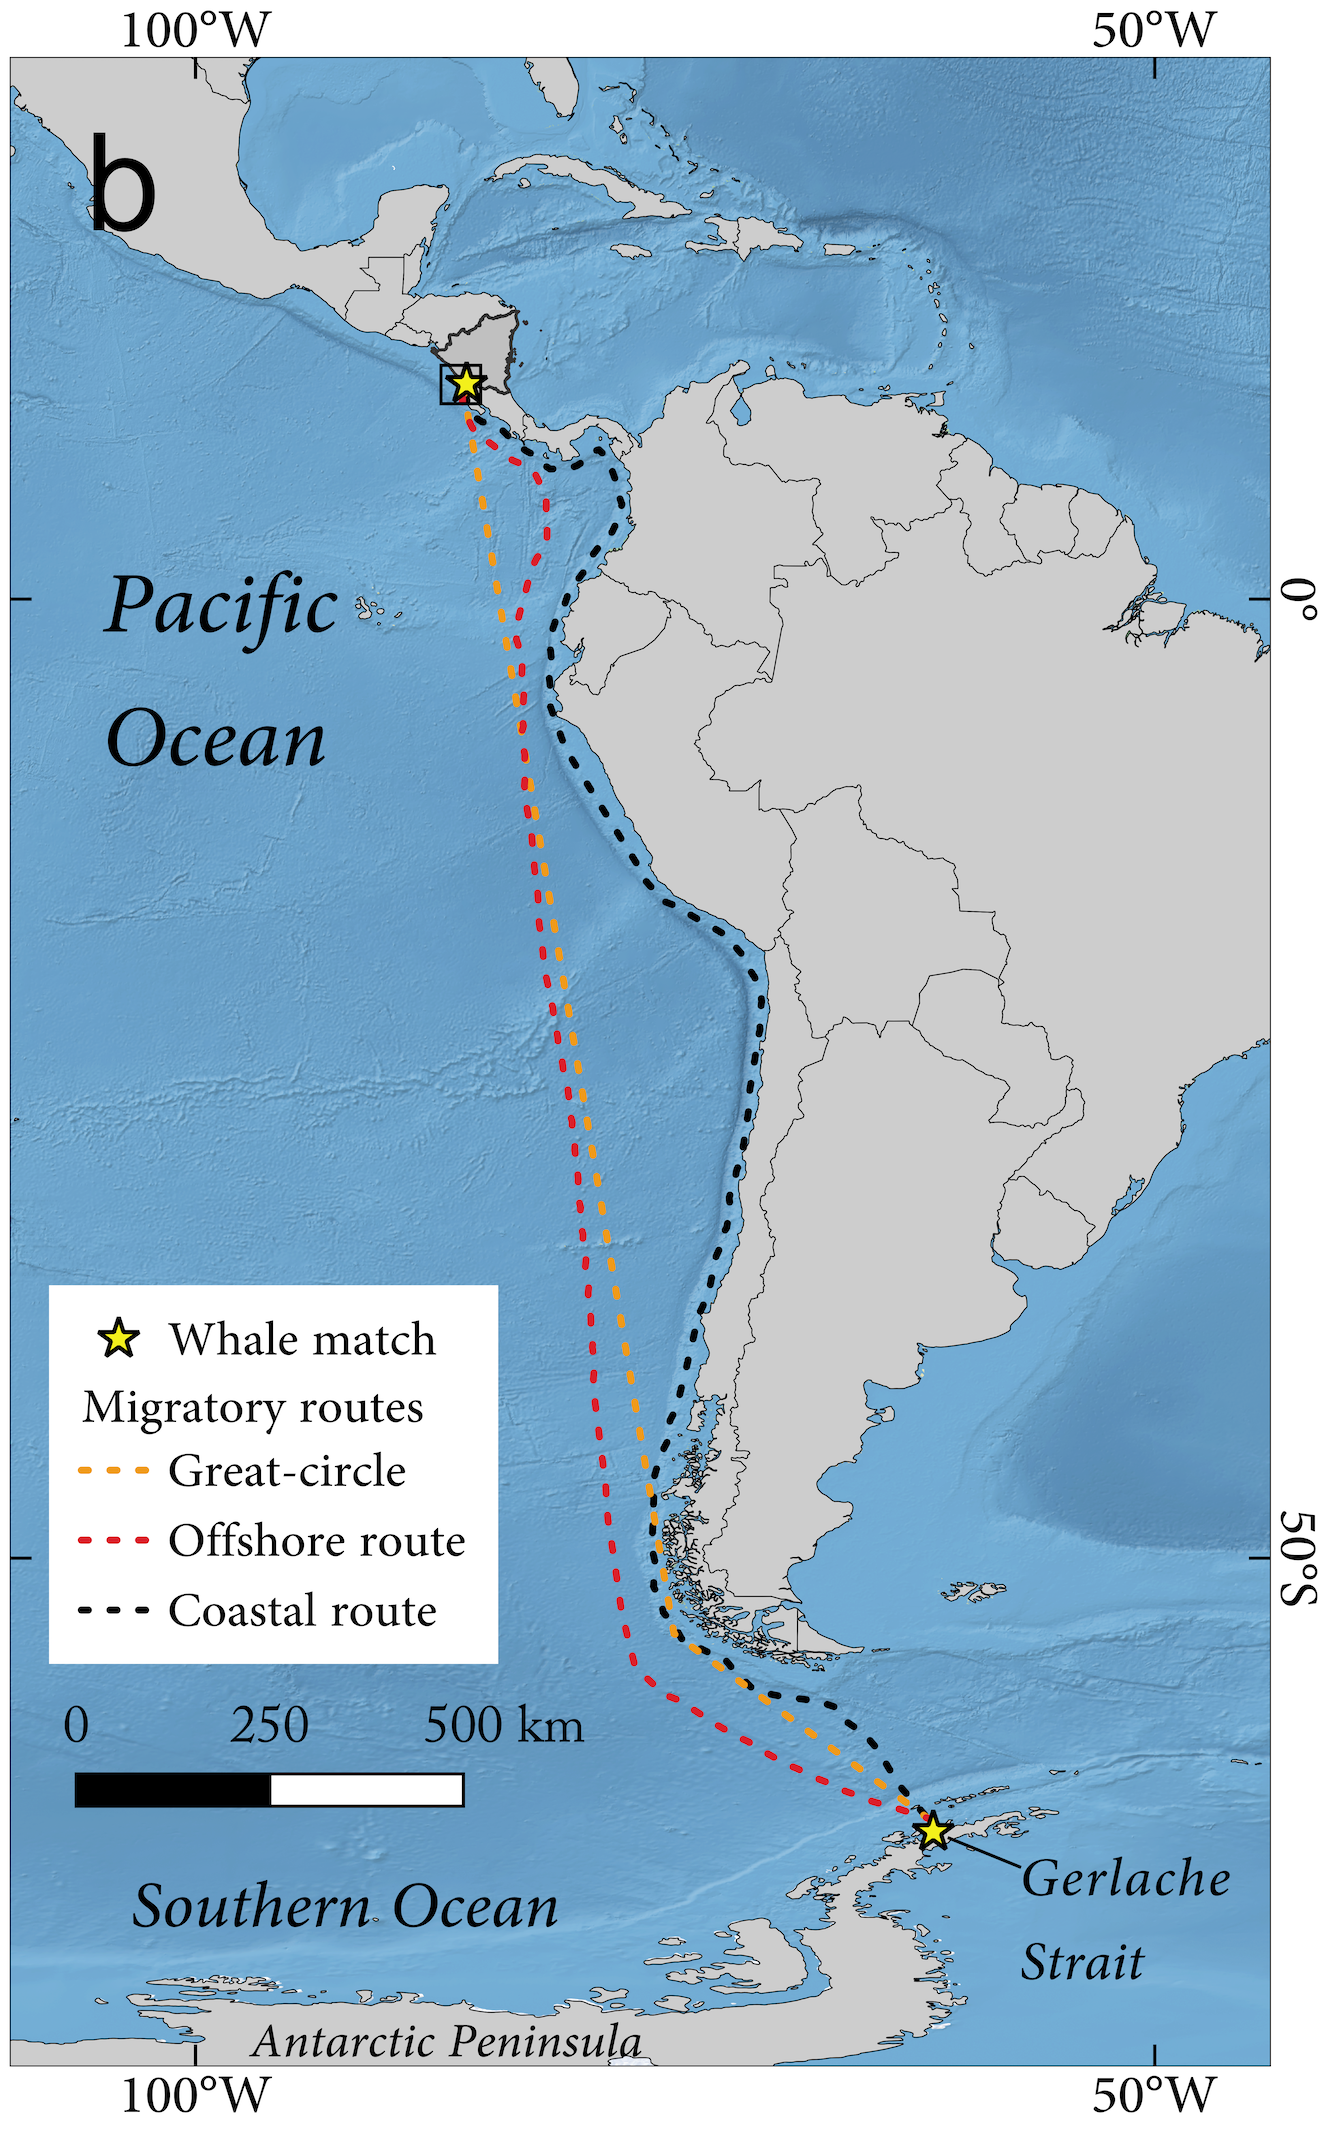 Possible migration routes of the humpback match between Nicaragua and Antarctica